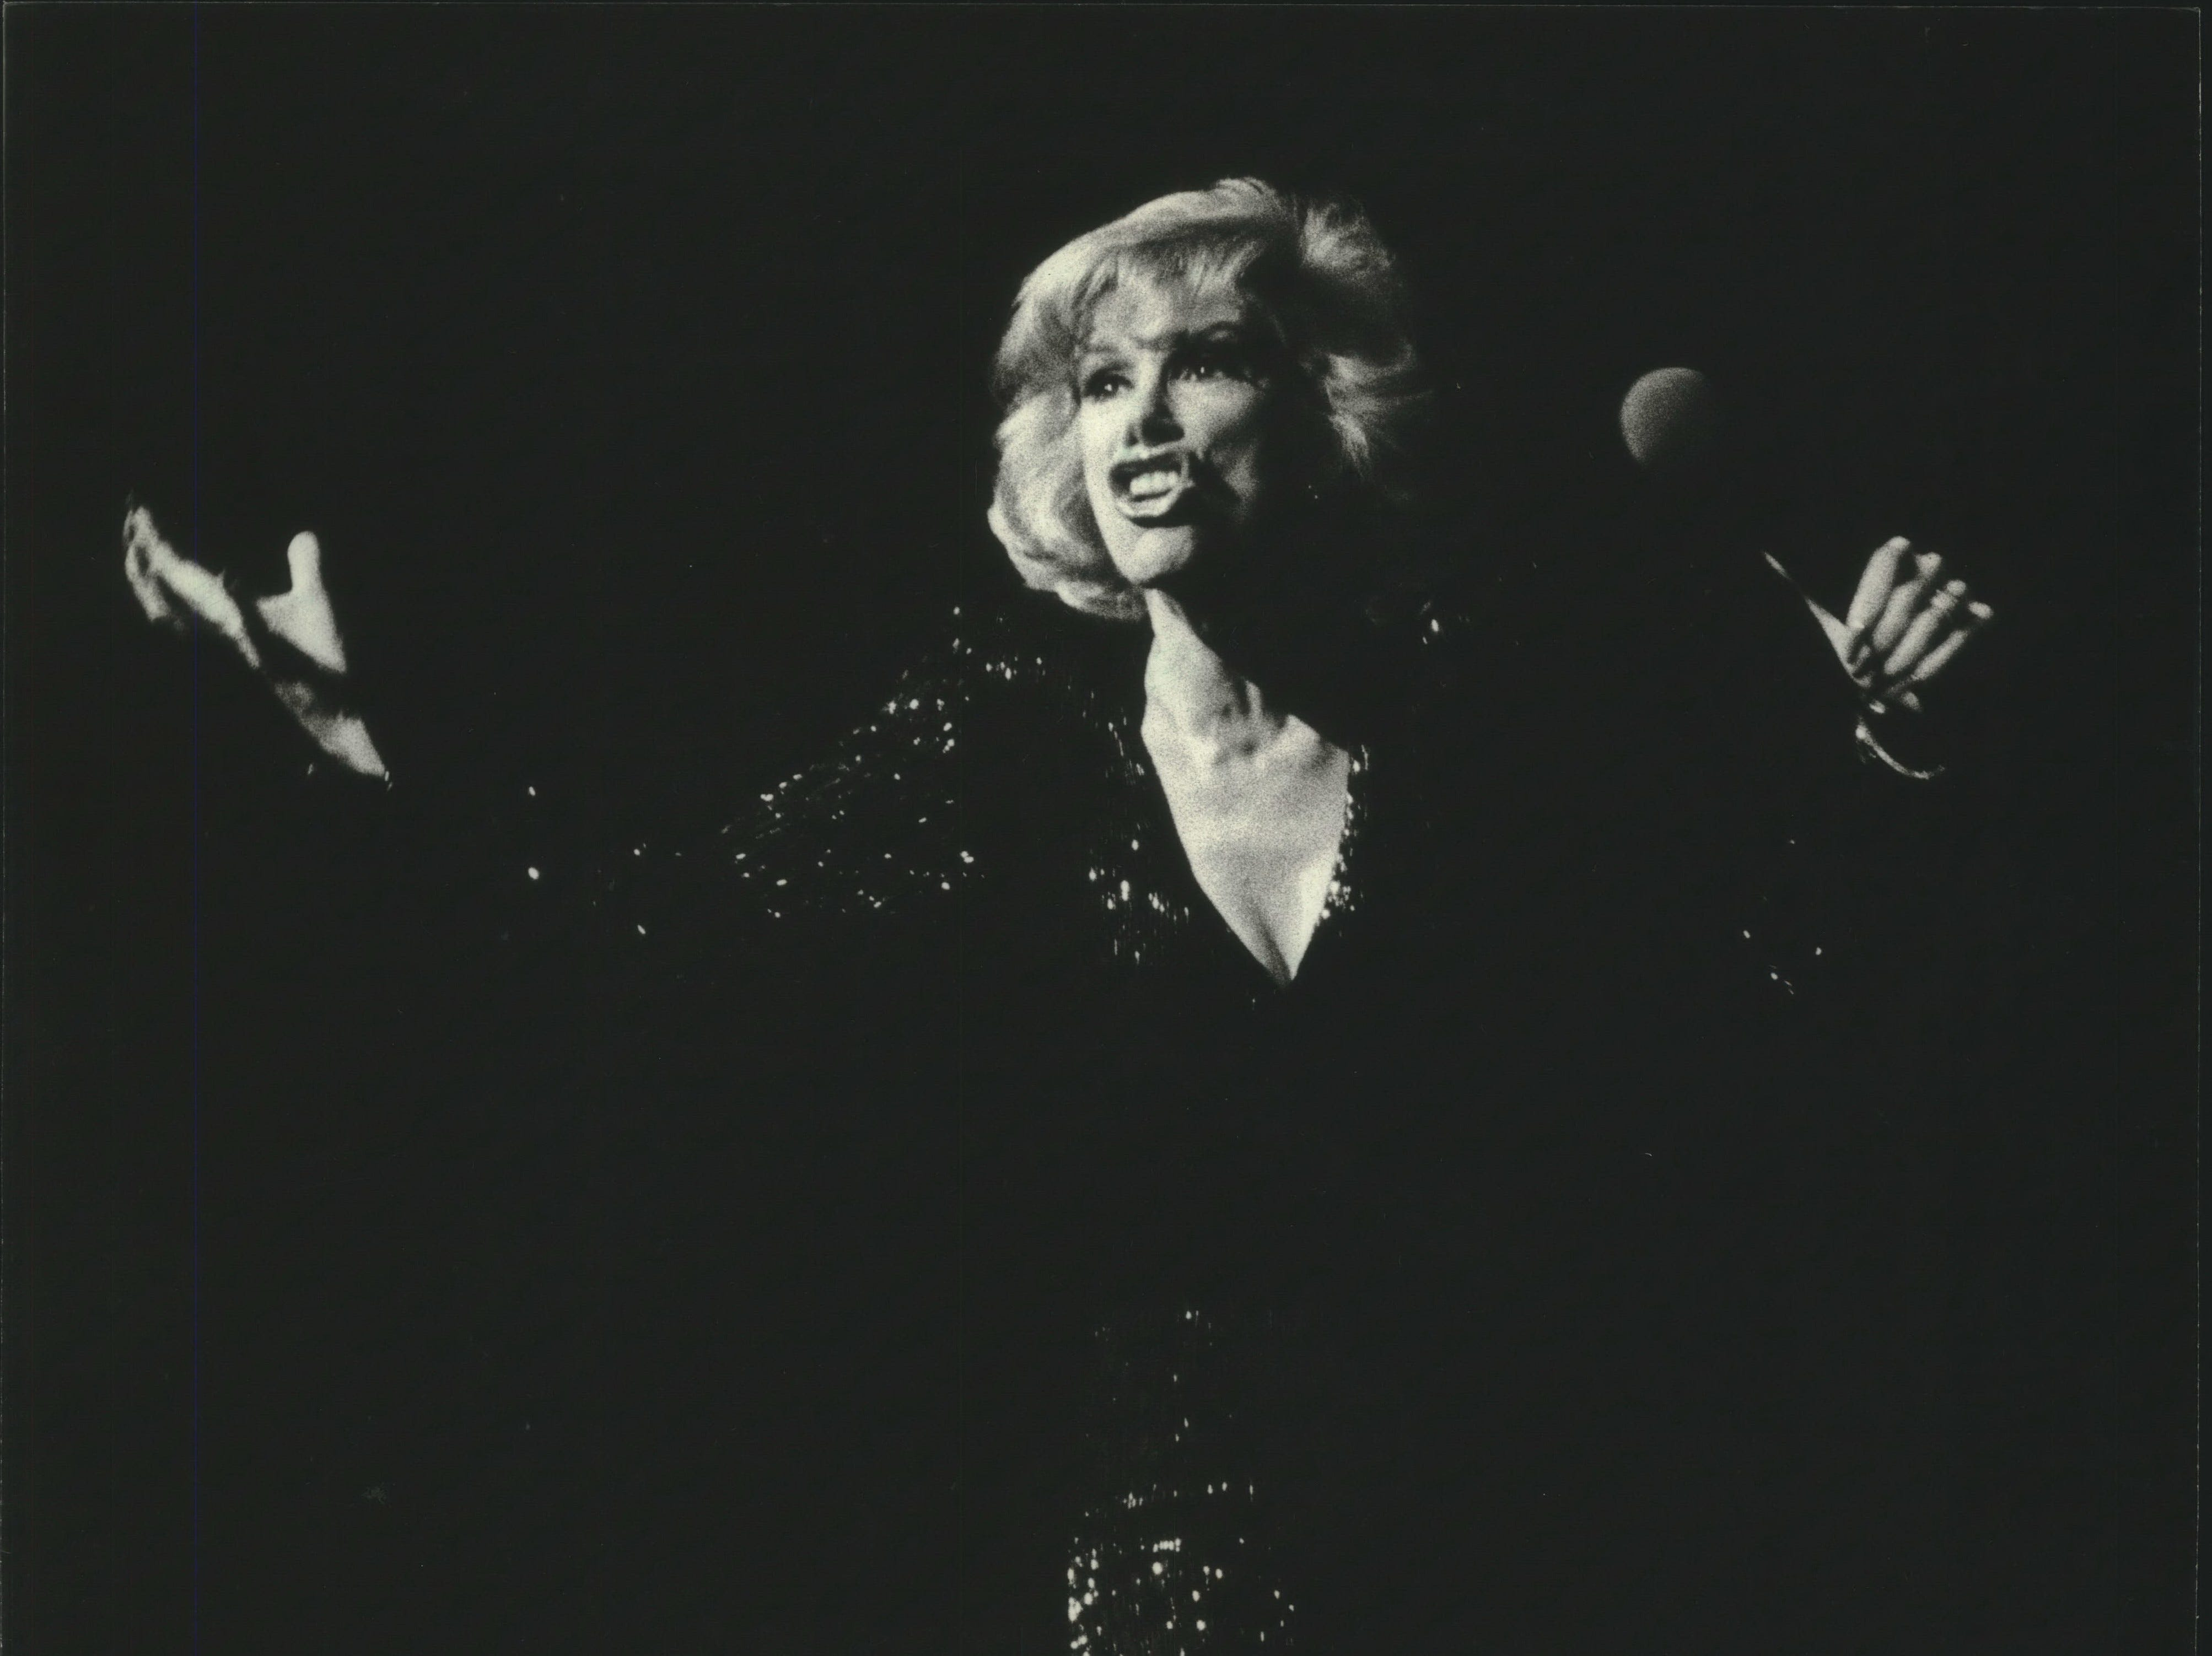 Milwaukee, Wisconsin-Comedian Joan Rivers was on stage in Uihlein HalL at the PAC